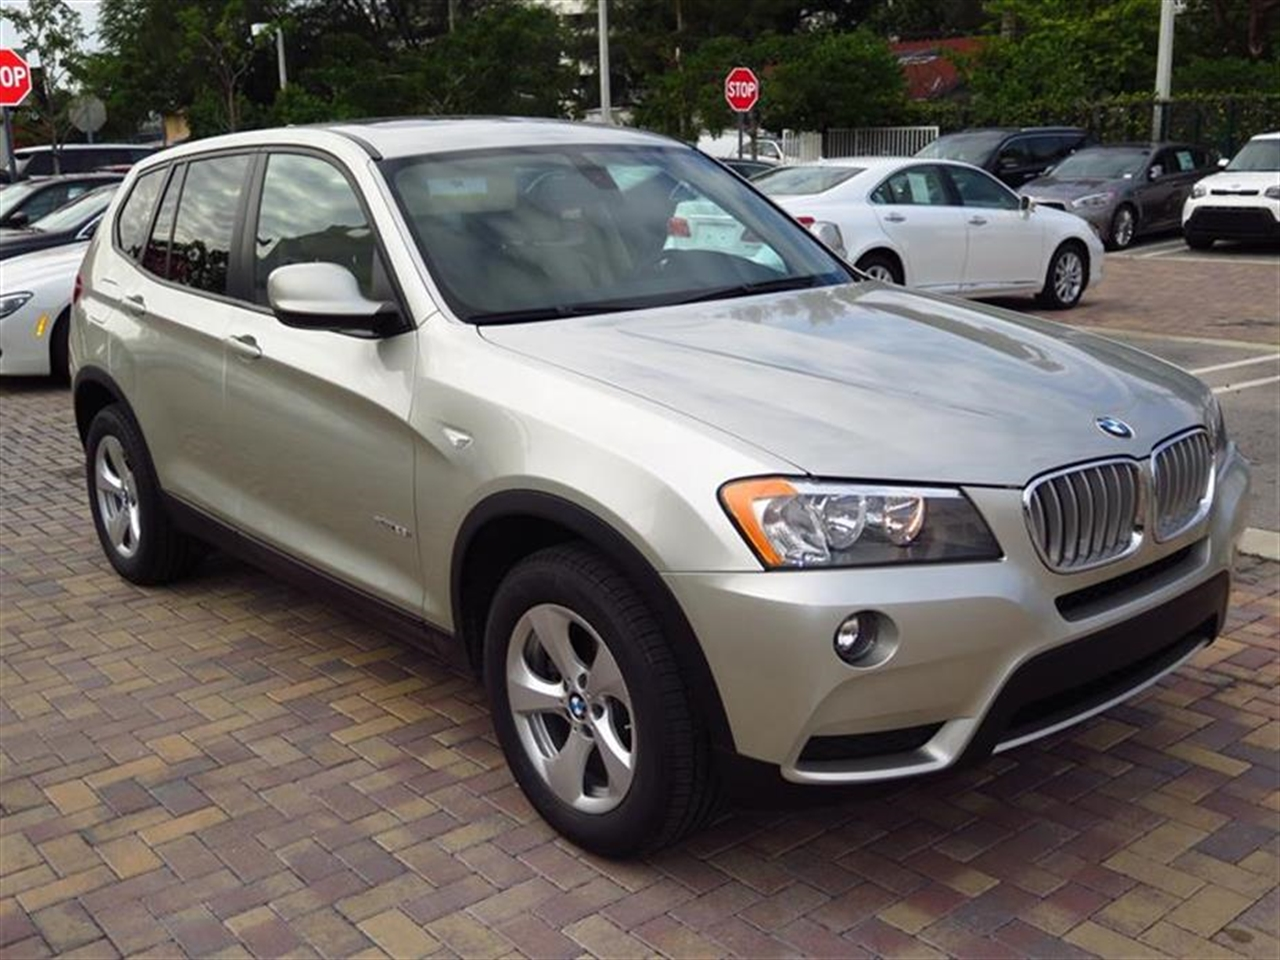 2012 BMW X3 AWD 4dr 28i 32842 miles 3-spoke leather-wrapped multi-function sport steering wheel wi